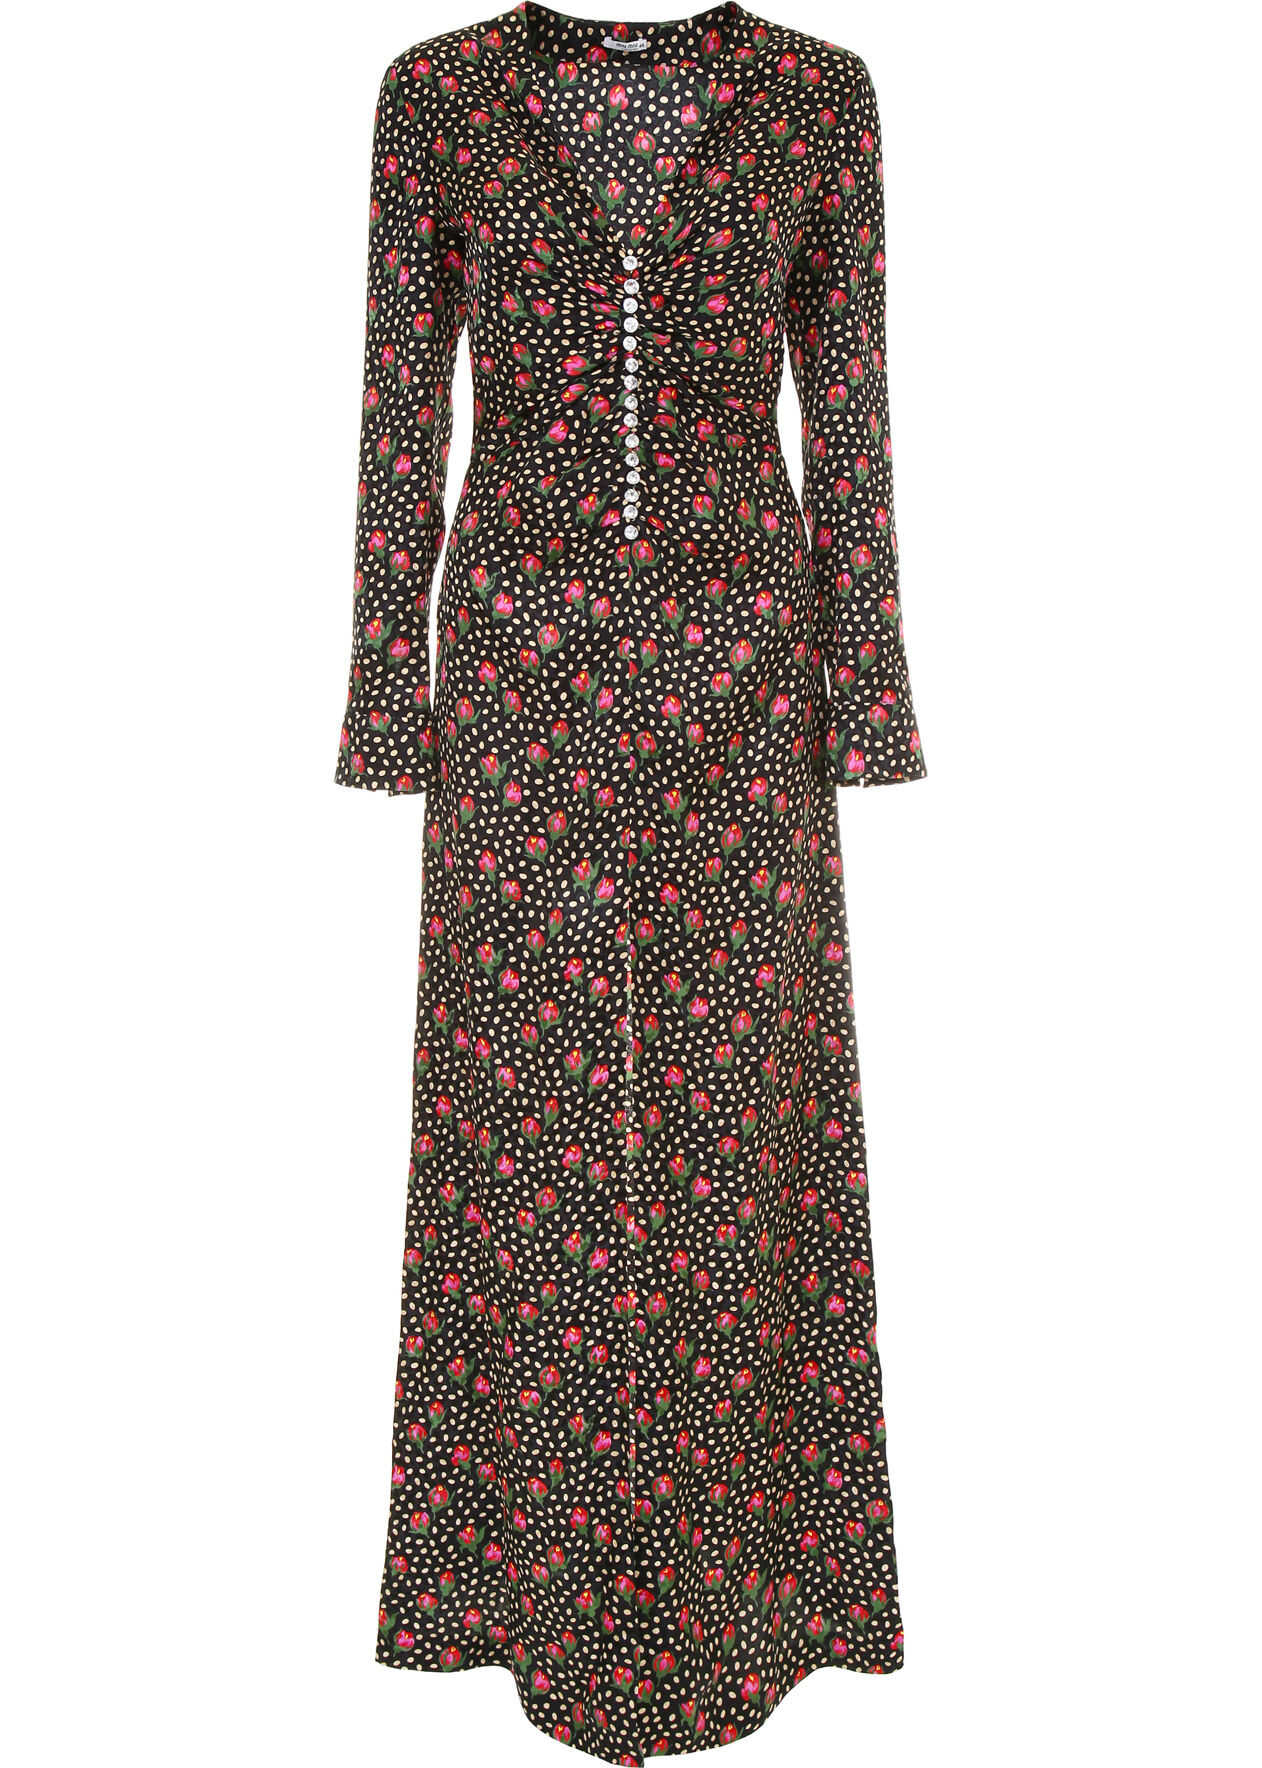 Miu Miu Rosebud Dress NERO